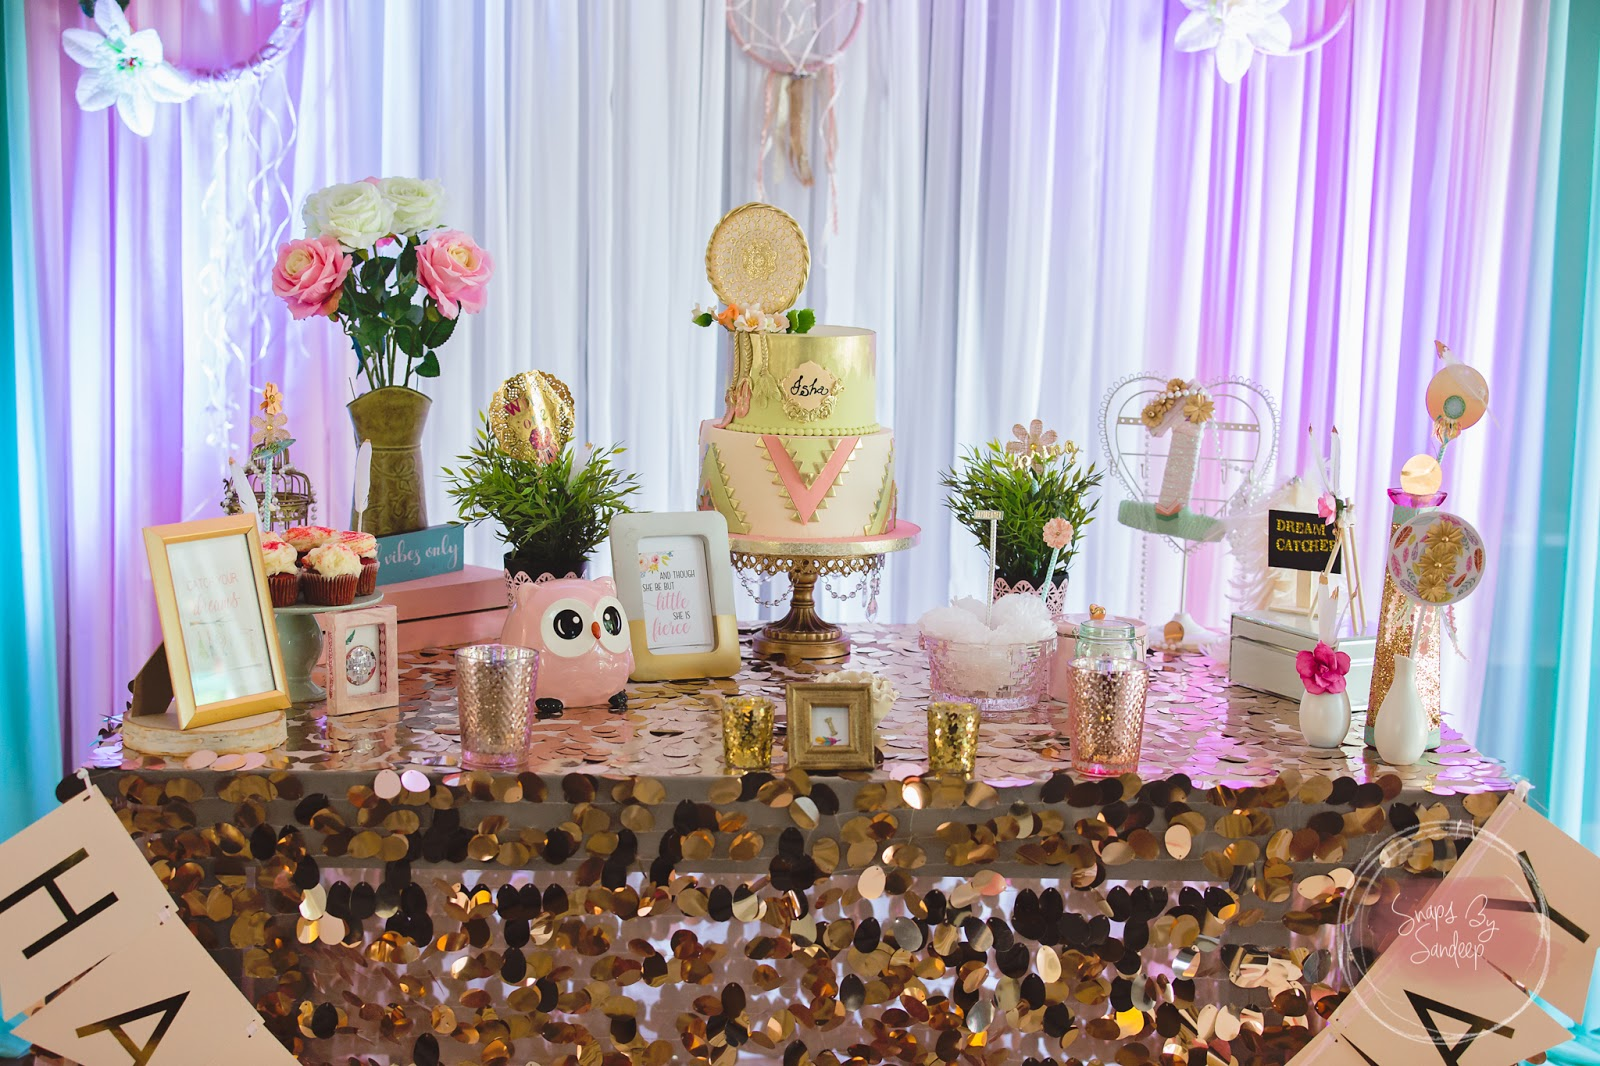 If Youre Looking For Boho Chic Party Theme Idea This Event Is The Perfect Inspiration